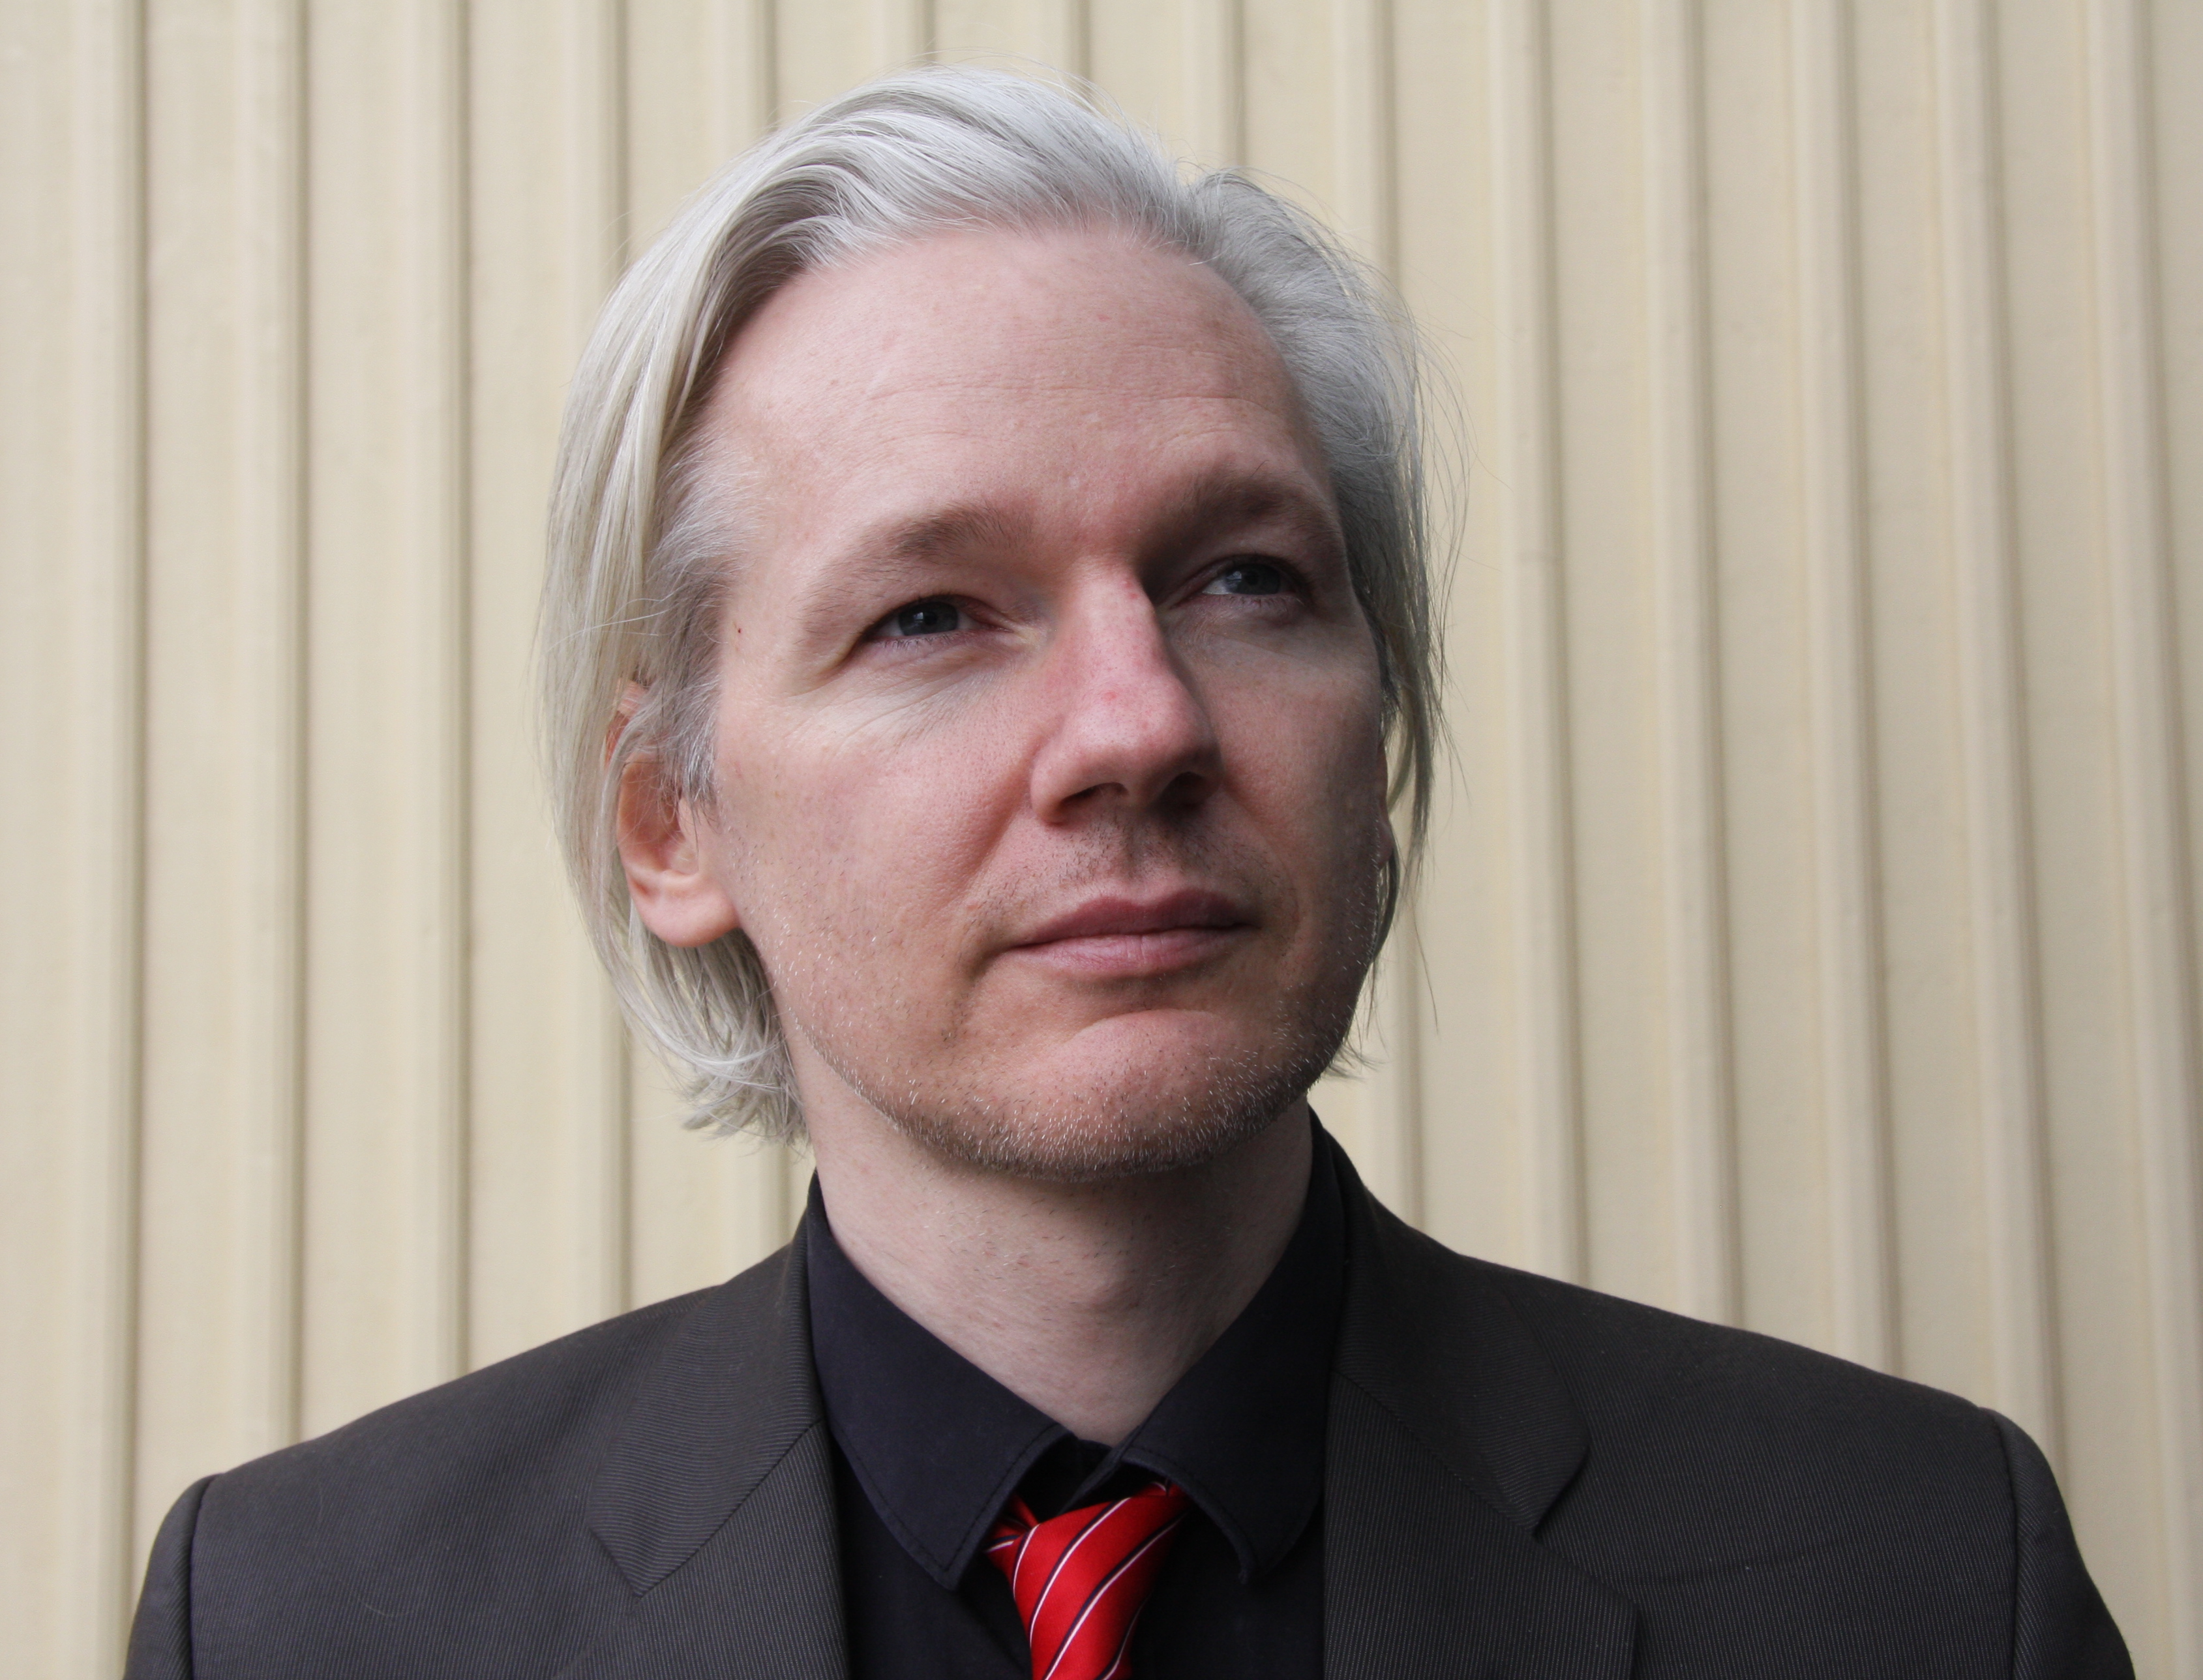 Julian_Assange_Norway_March_2010. ... - Julian_Assange_Norway_March_2010